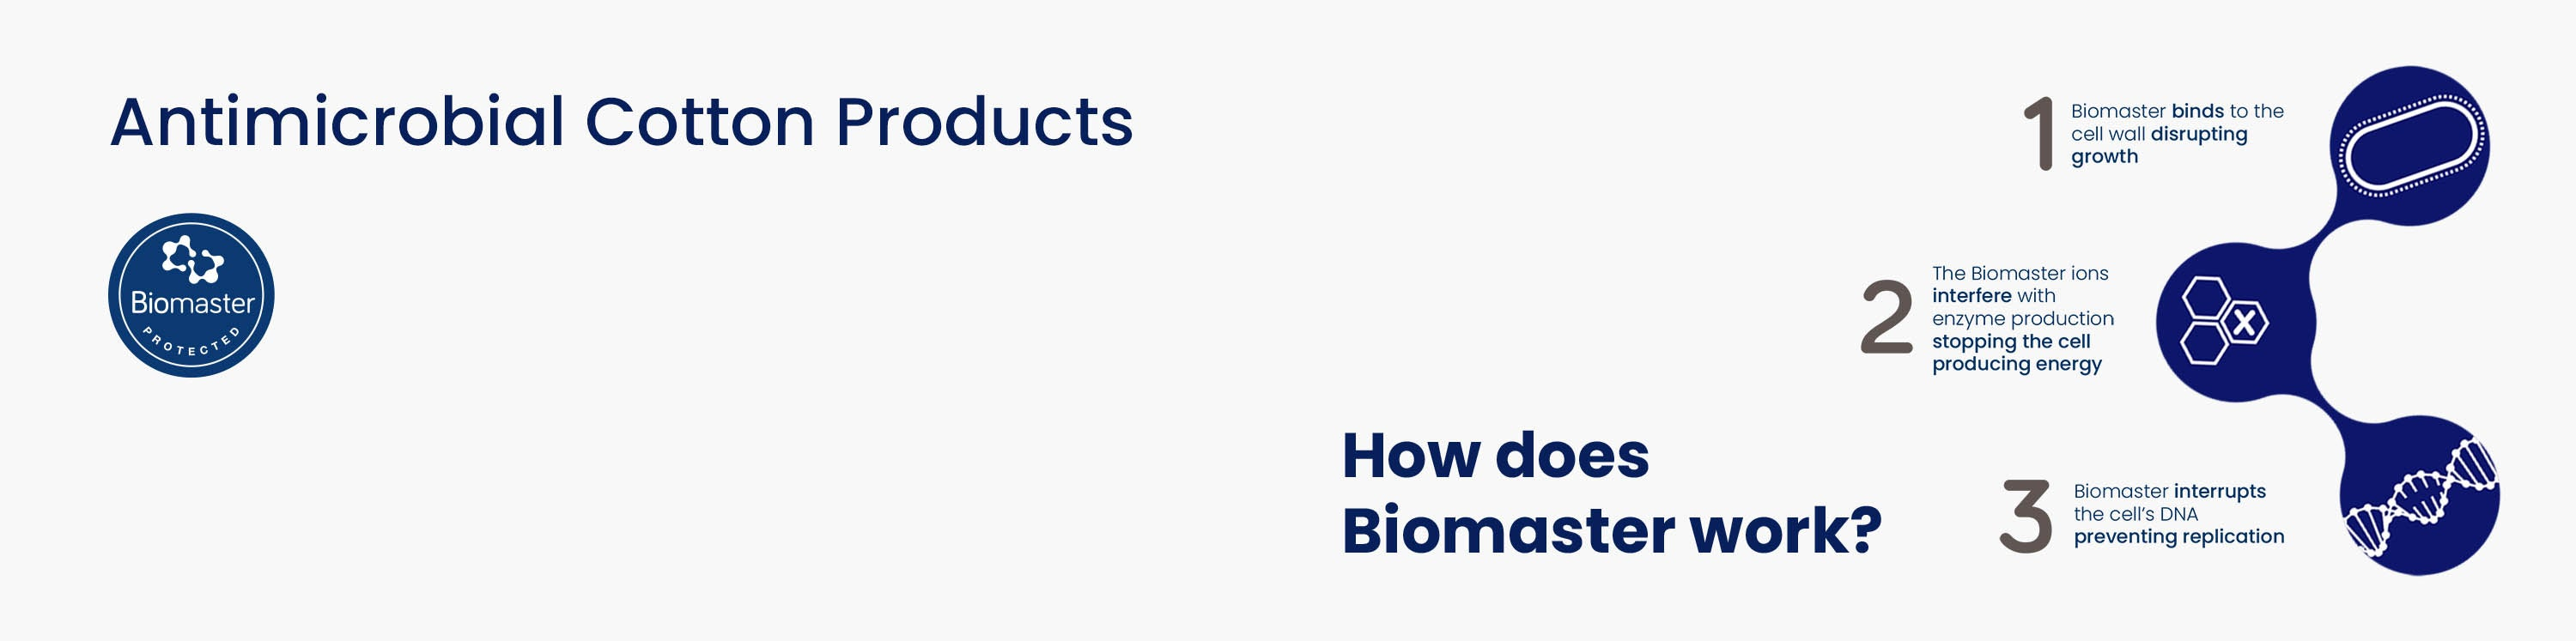 Biomaster Antimicrobial Cotton Bags